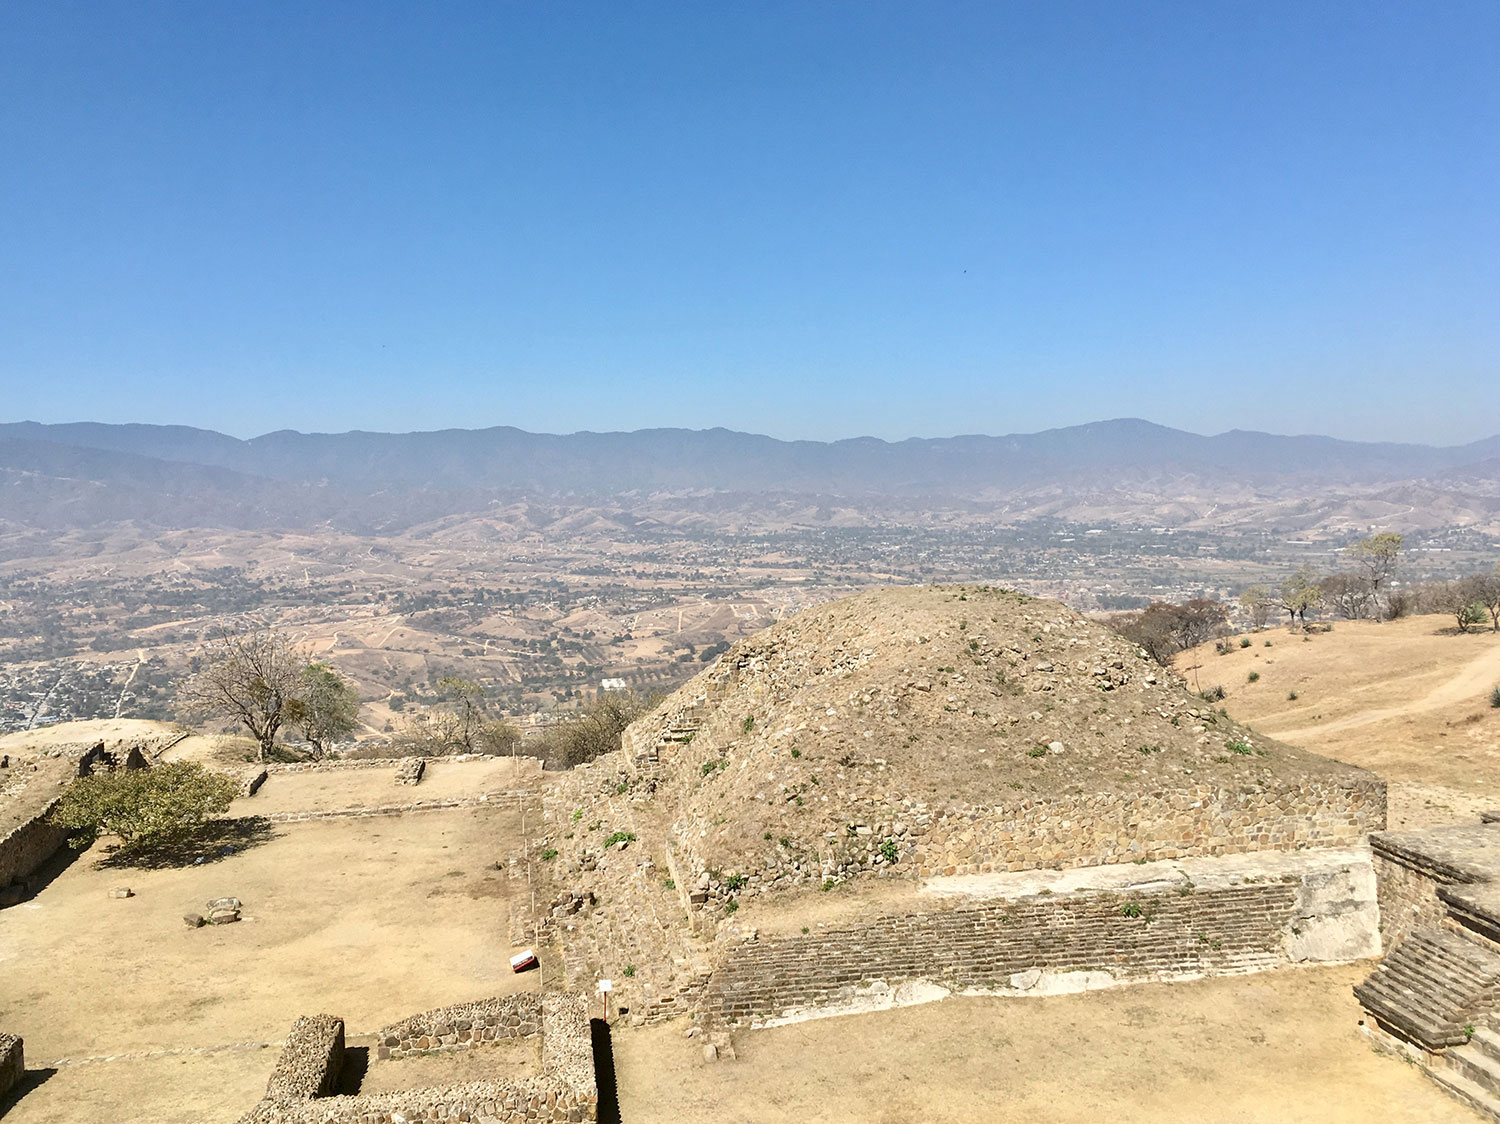 View of the town from the top of the Temple of Masks.